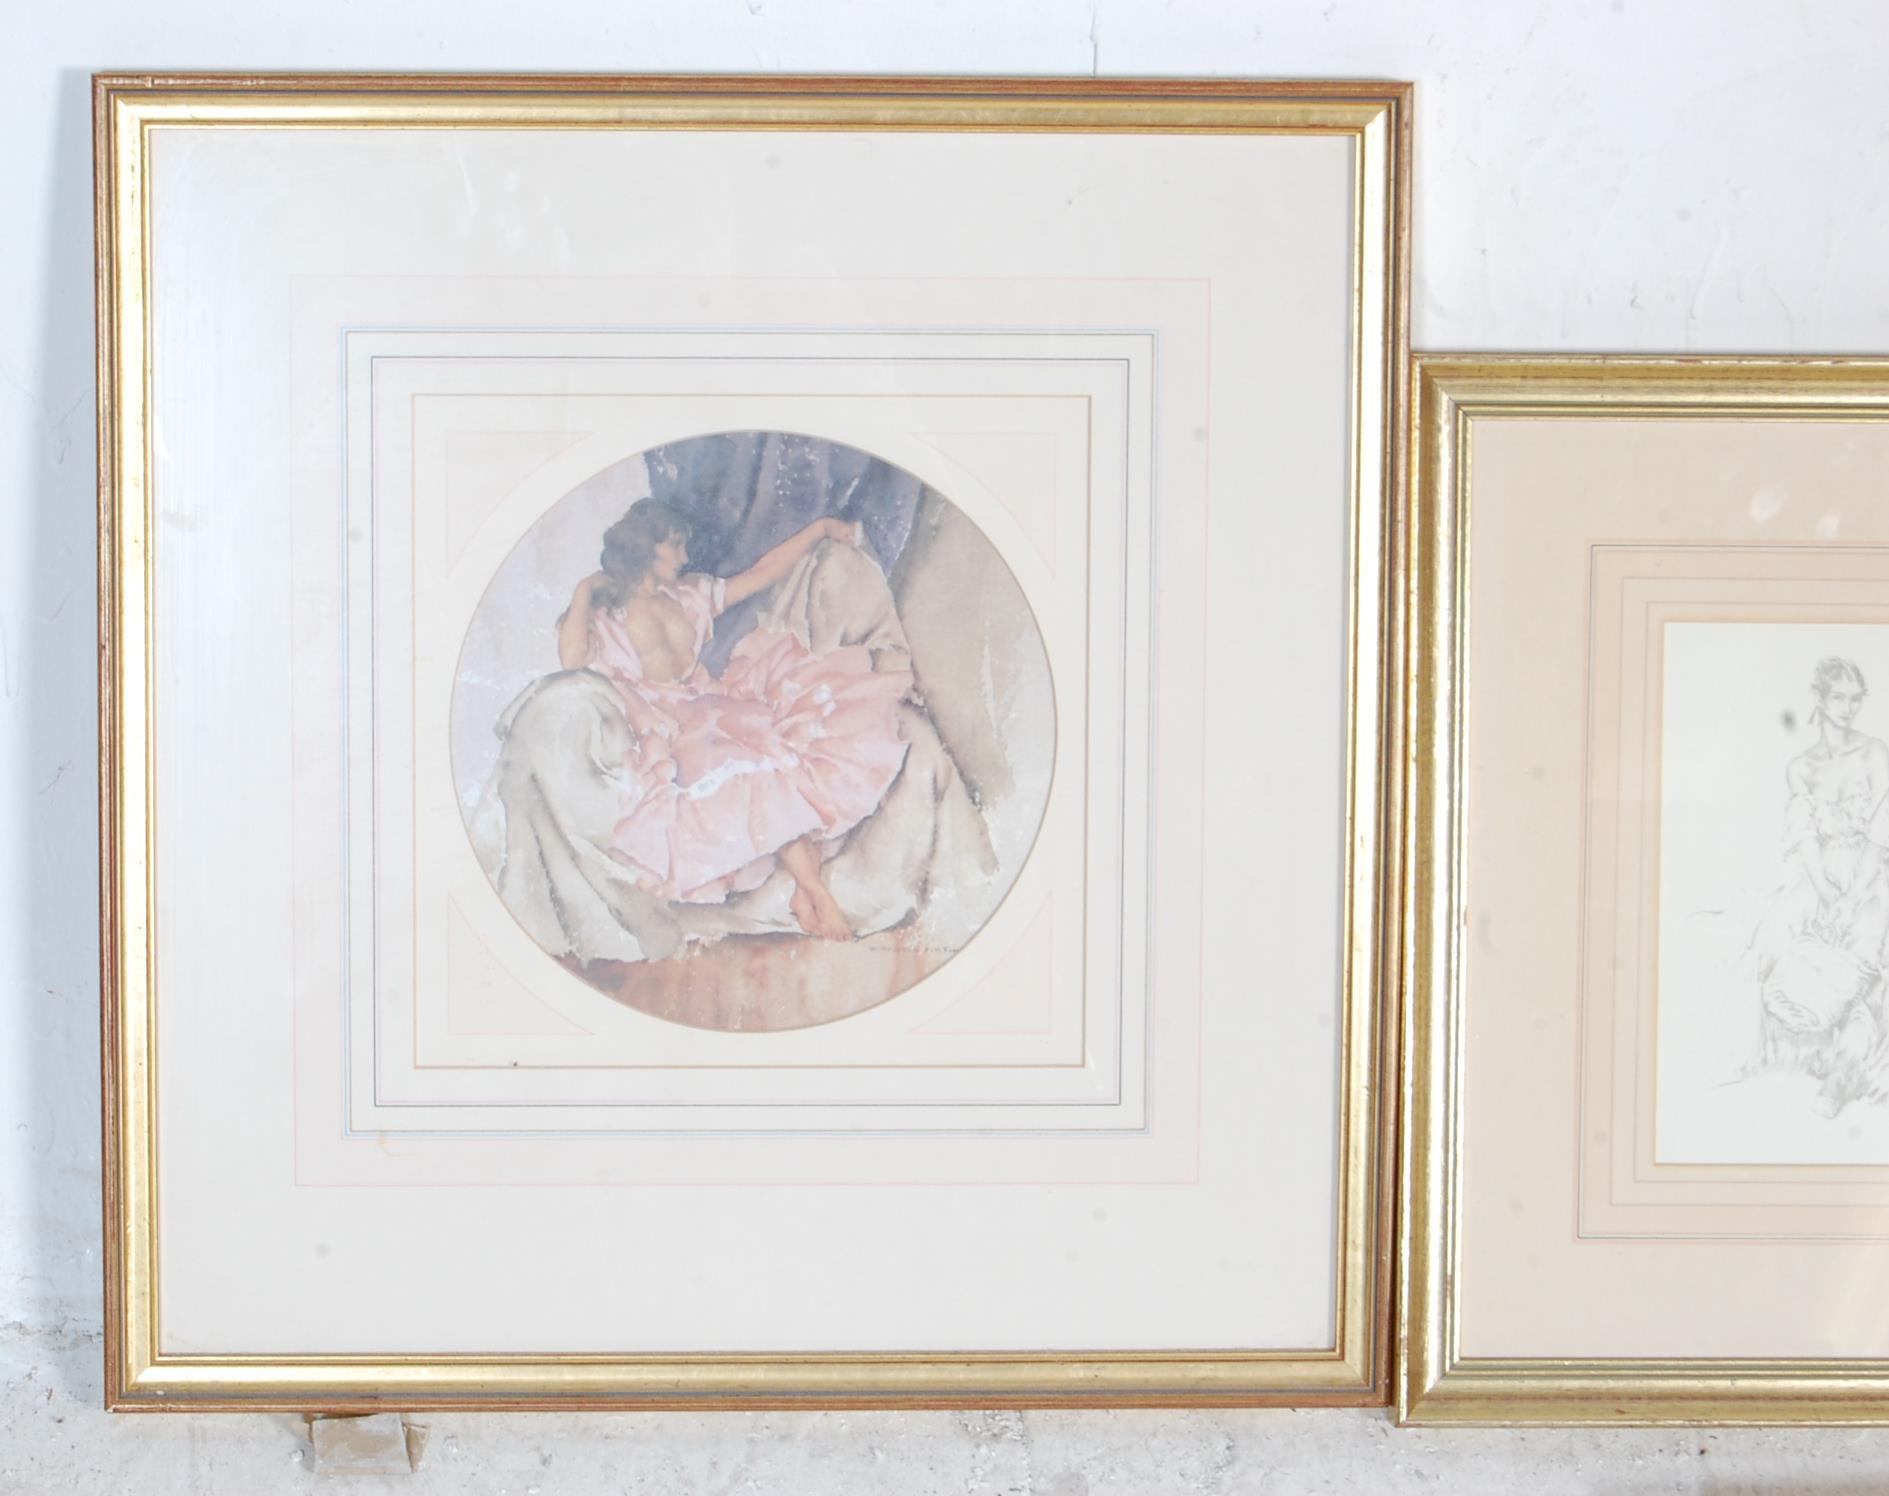 COLLECTION OF FIVE VINTAGE WILLIAM R. FLINT PICTURE PRINTS - Image 2 of 6